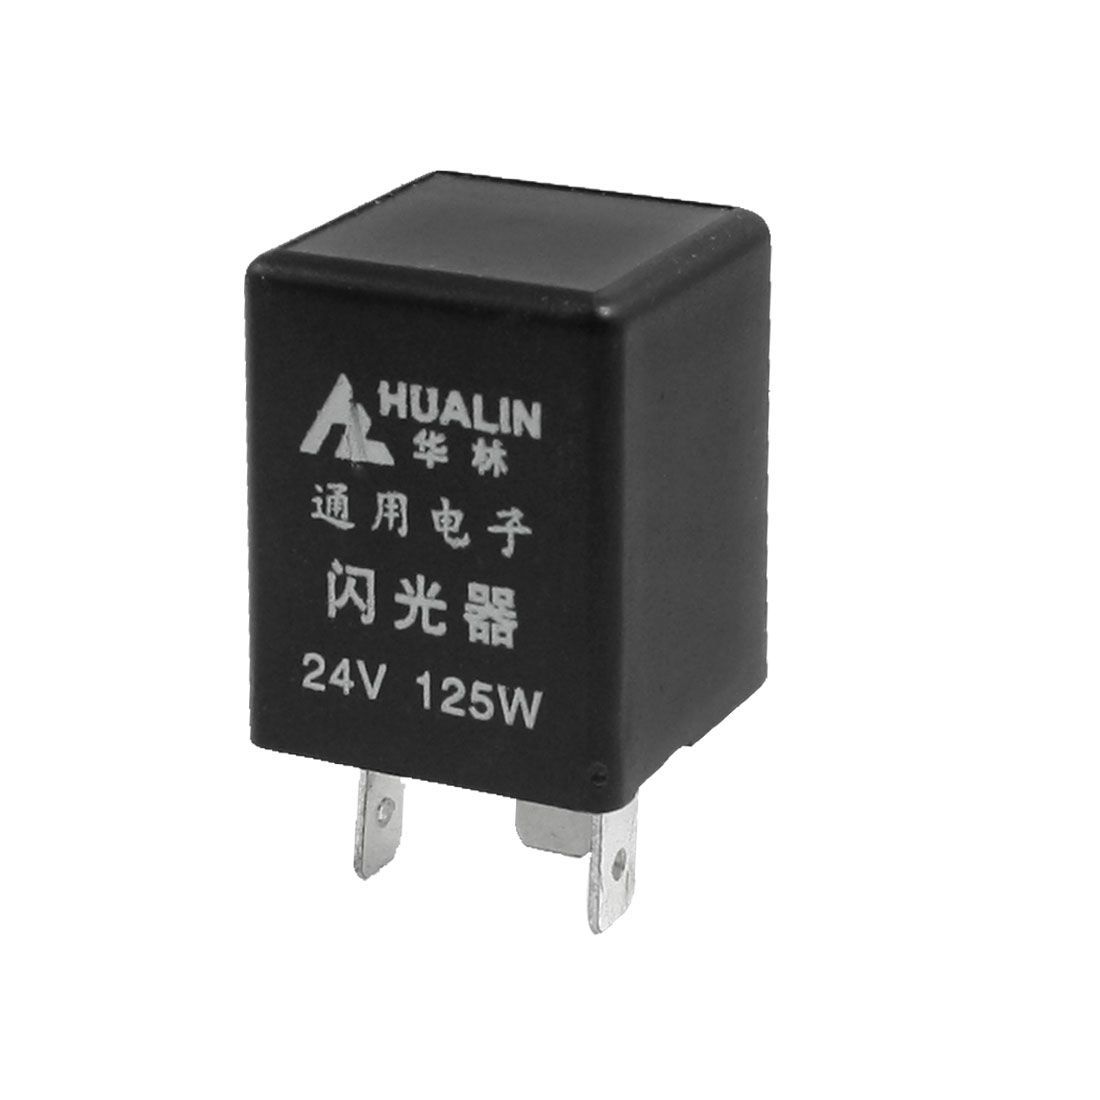 DC 24V 125W Electronic LED Light Car Flasher Relay 3 Pole Replacement